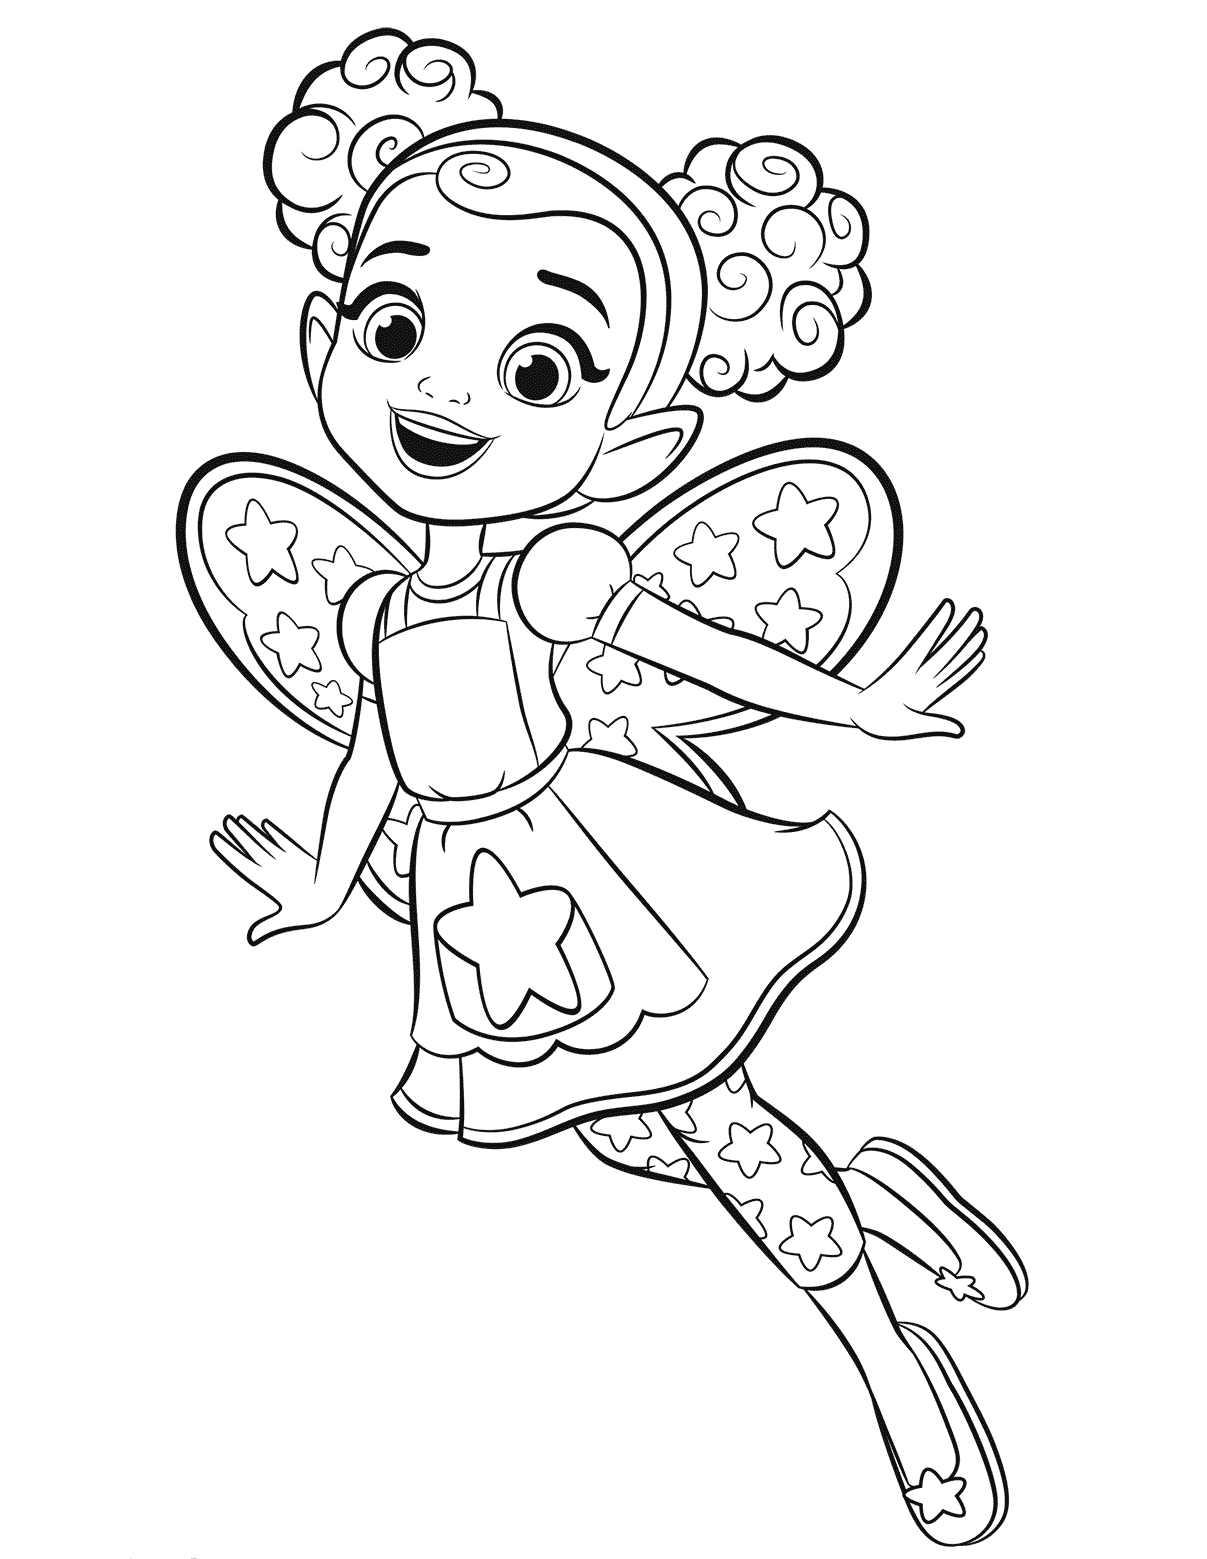 dazzle coloring pages for children - photo#4